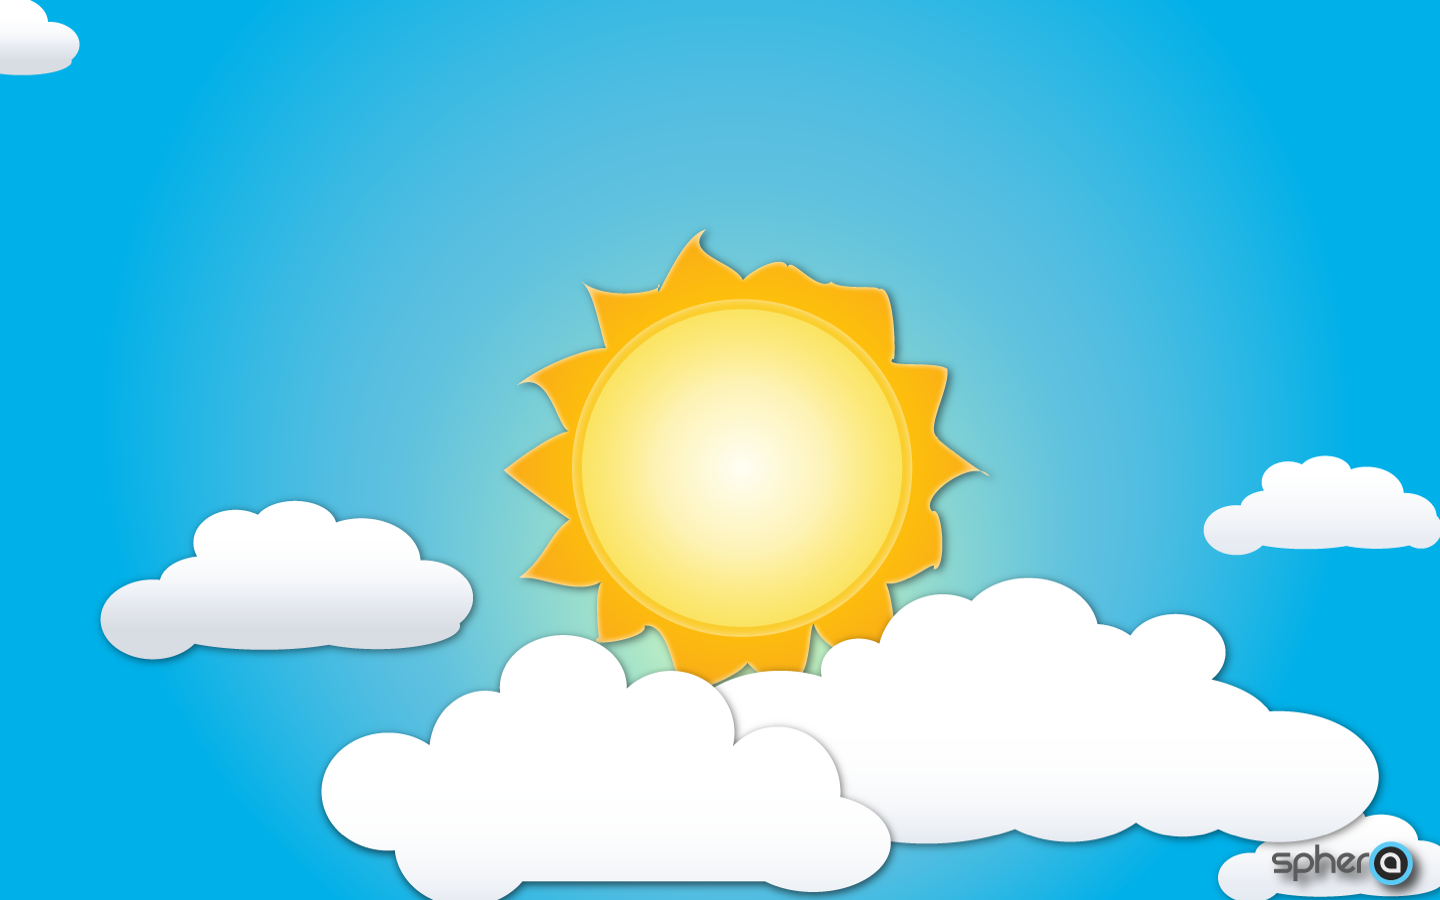 sunny day clipart 9 · Sday clipart - Bright Sunny Day PNG